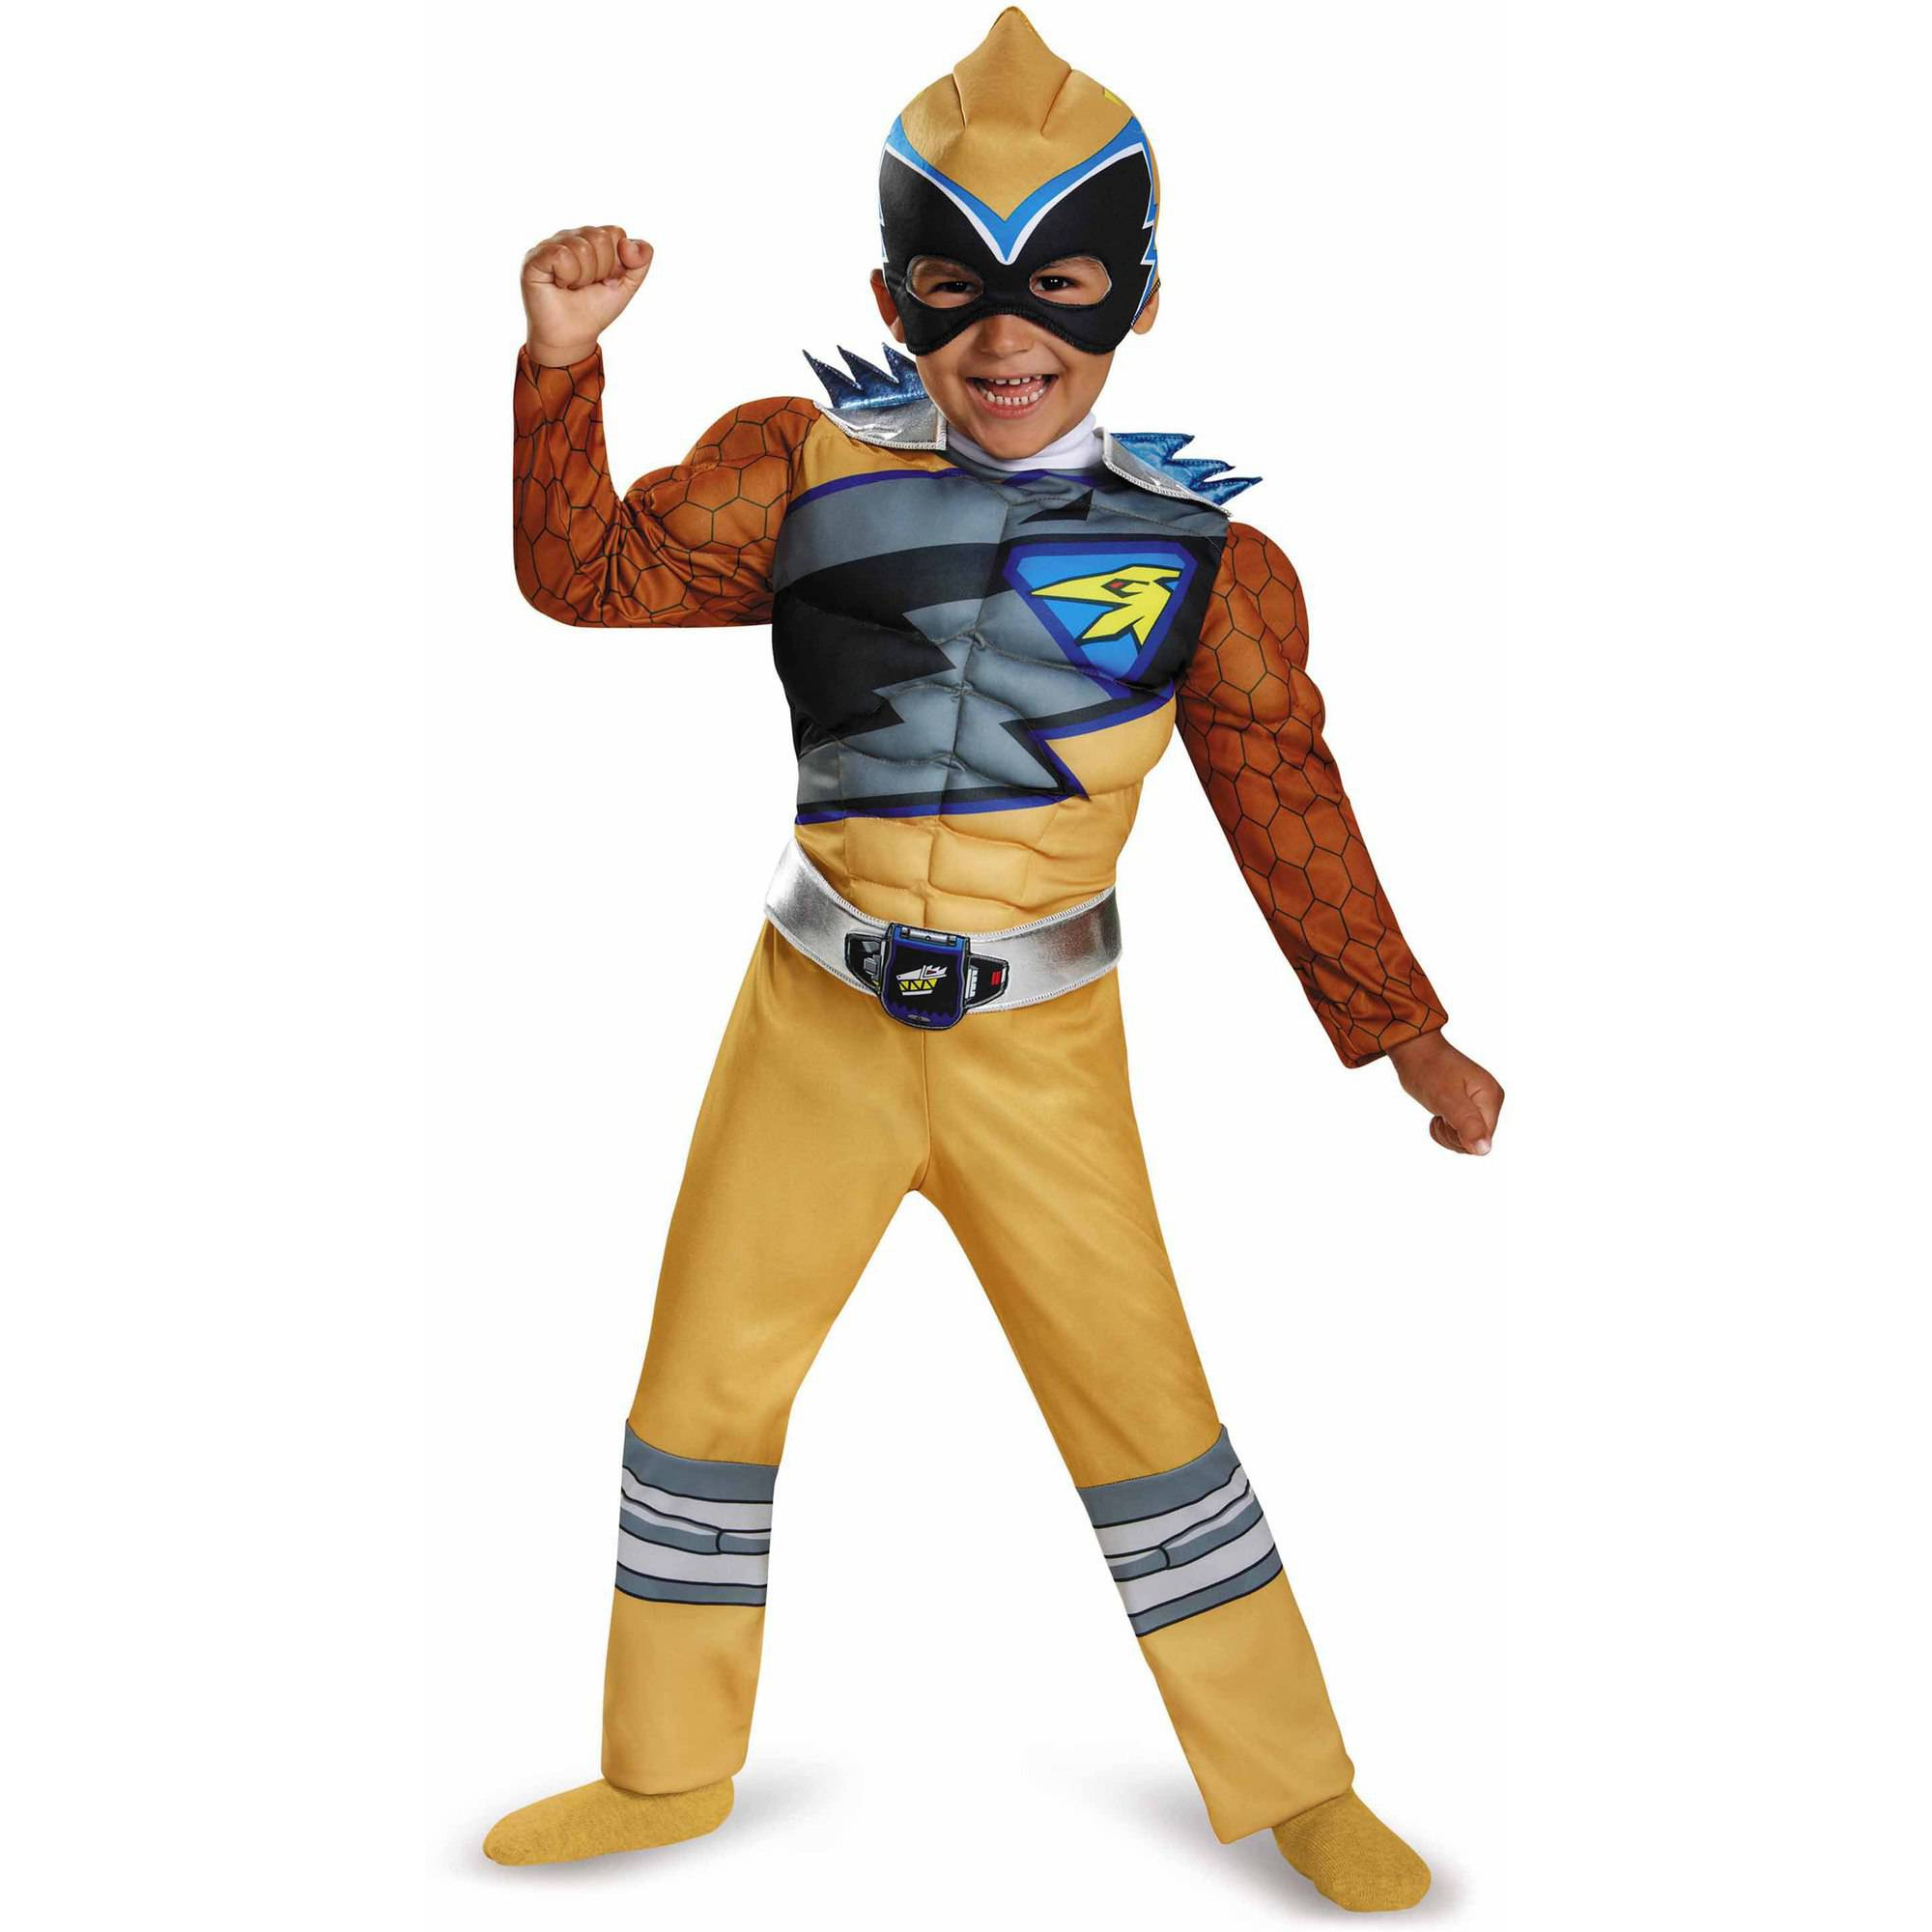 Gold Power Ranger Dino Charge Toddler Muscle Halloween Dress Up / Role Play Costume  sc 1 st  Walmart.com & Gold Power Ranger Dino Charge Toddler Muscle Halloween Dress Up ...